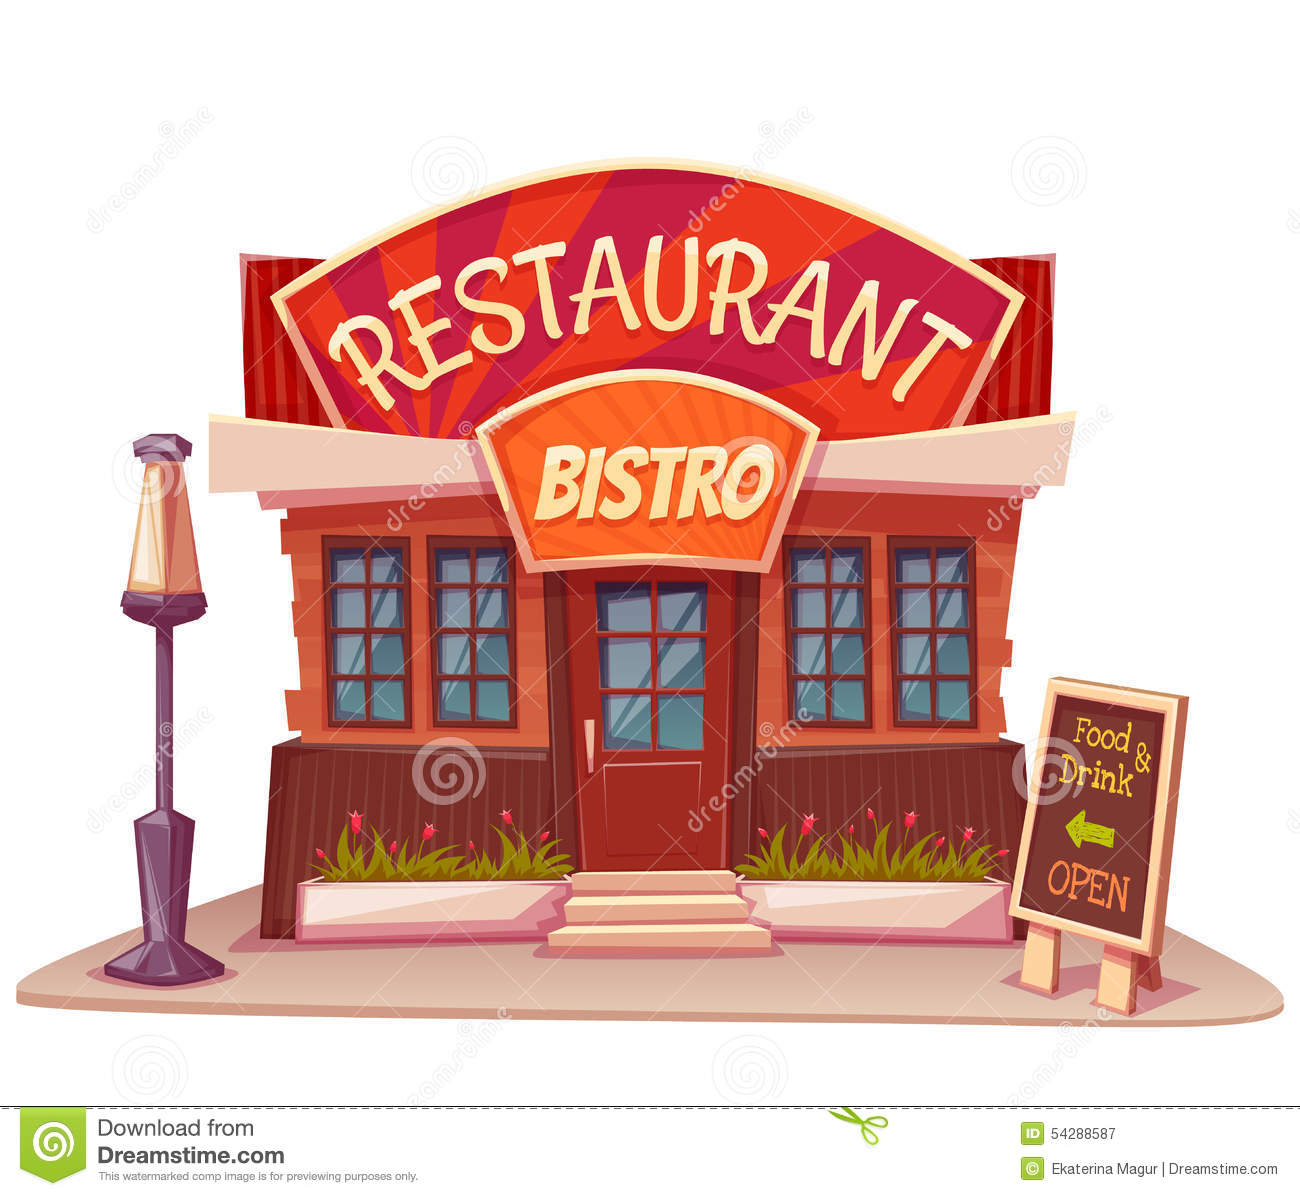 For restaurant pictures graphics illustrations clipart photos - Banner Bistro Building Illustration Restaurant